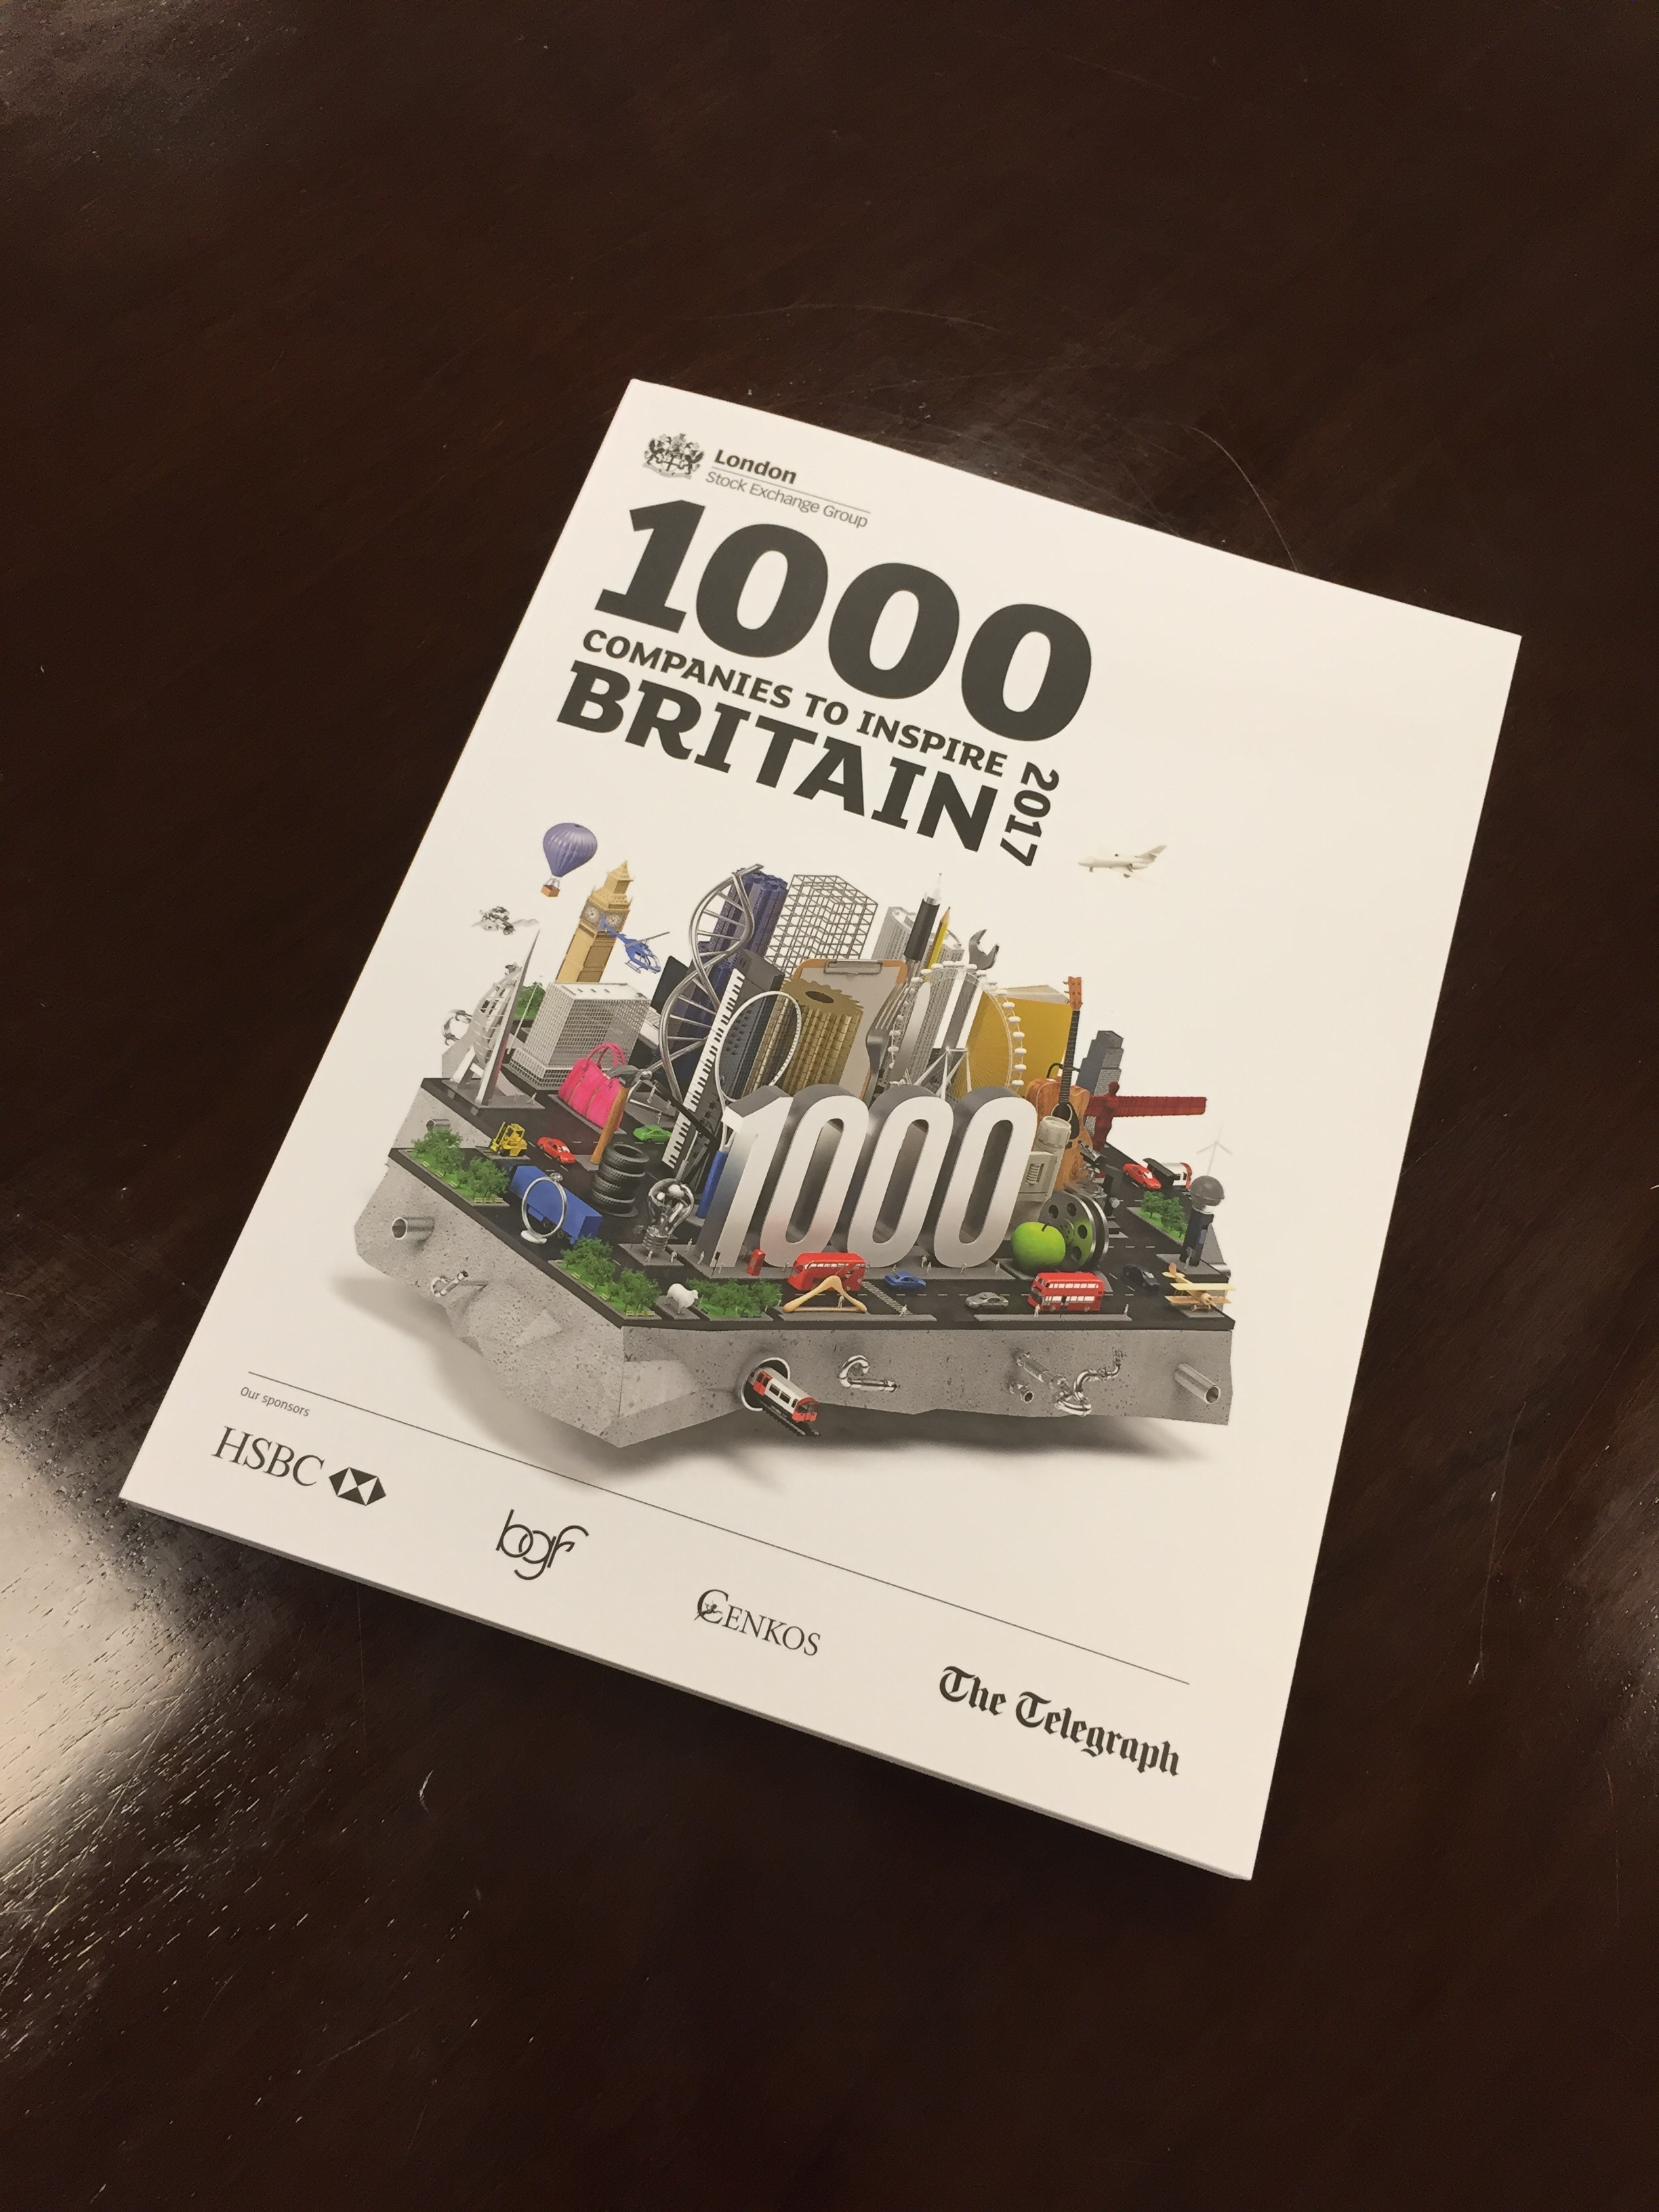 Stanmore recognised in '1000 Companies to Inspire Britain' report